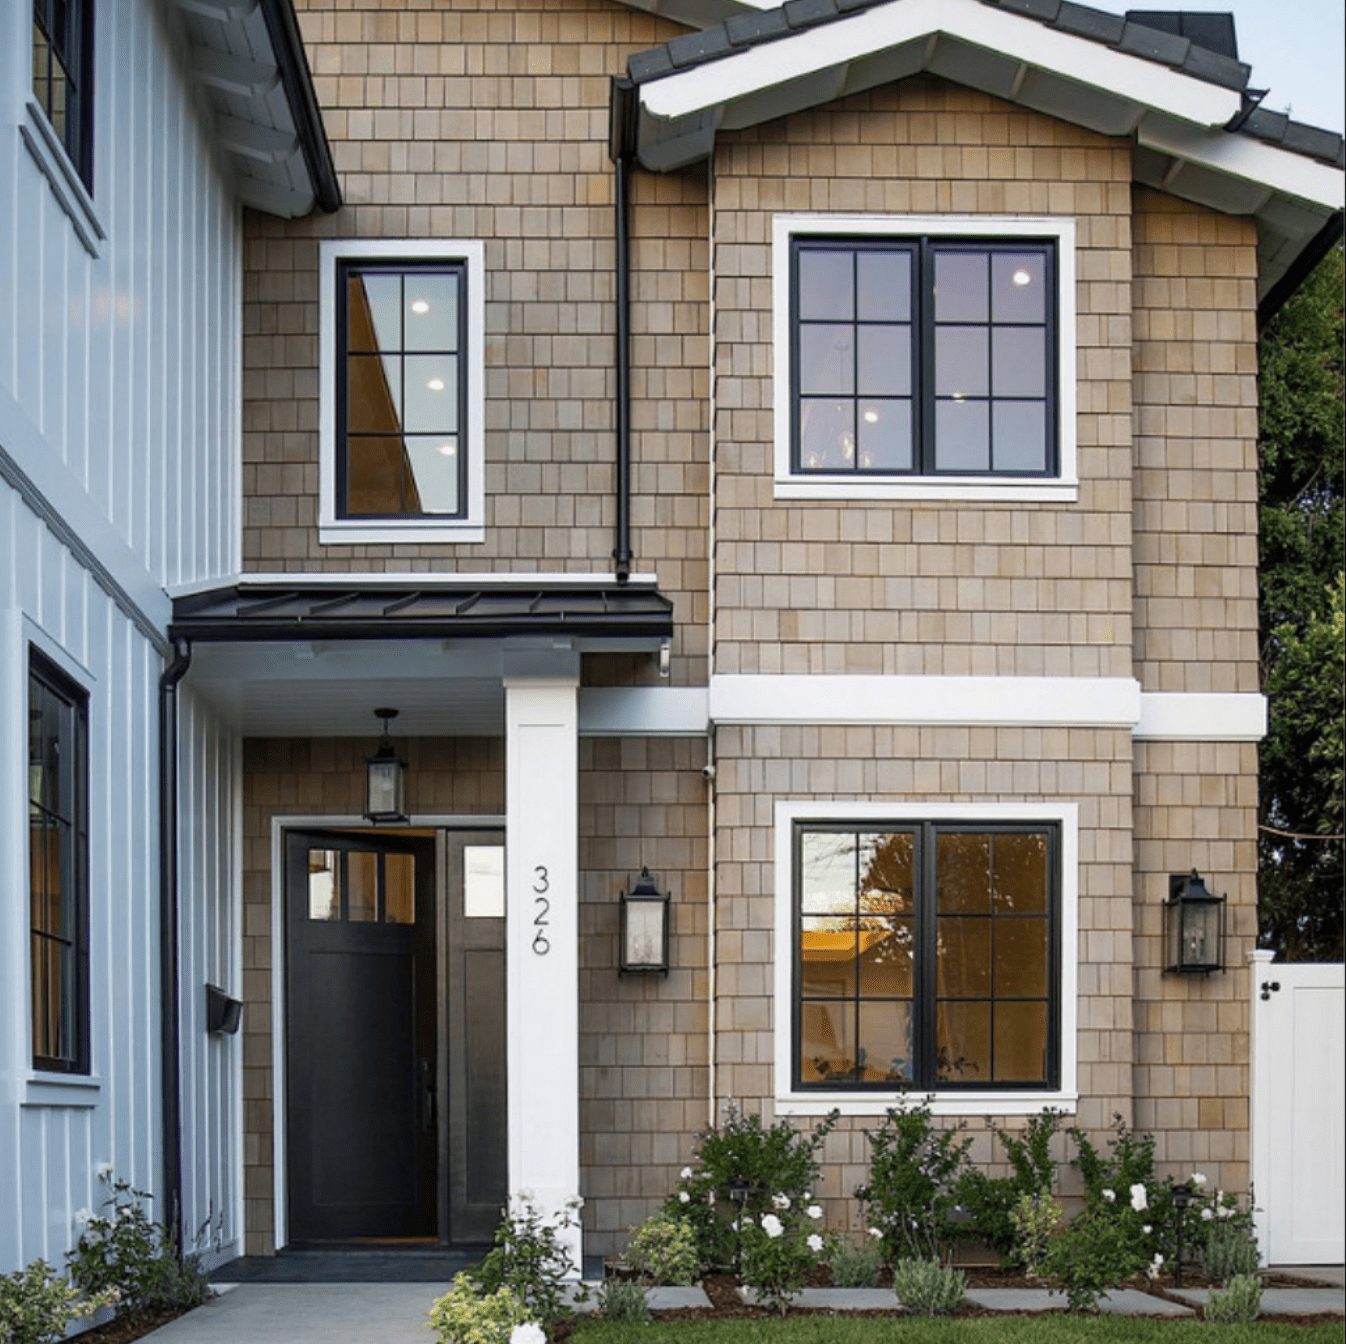 Choosing exterior finishes for themountainviewhouse for Exterior home finishes design